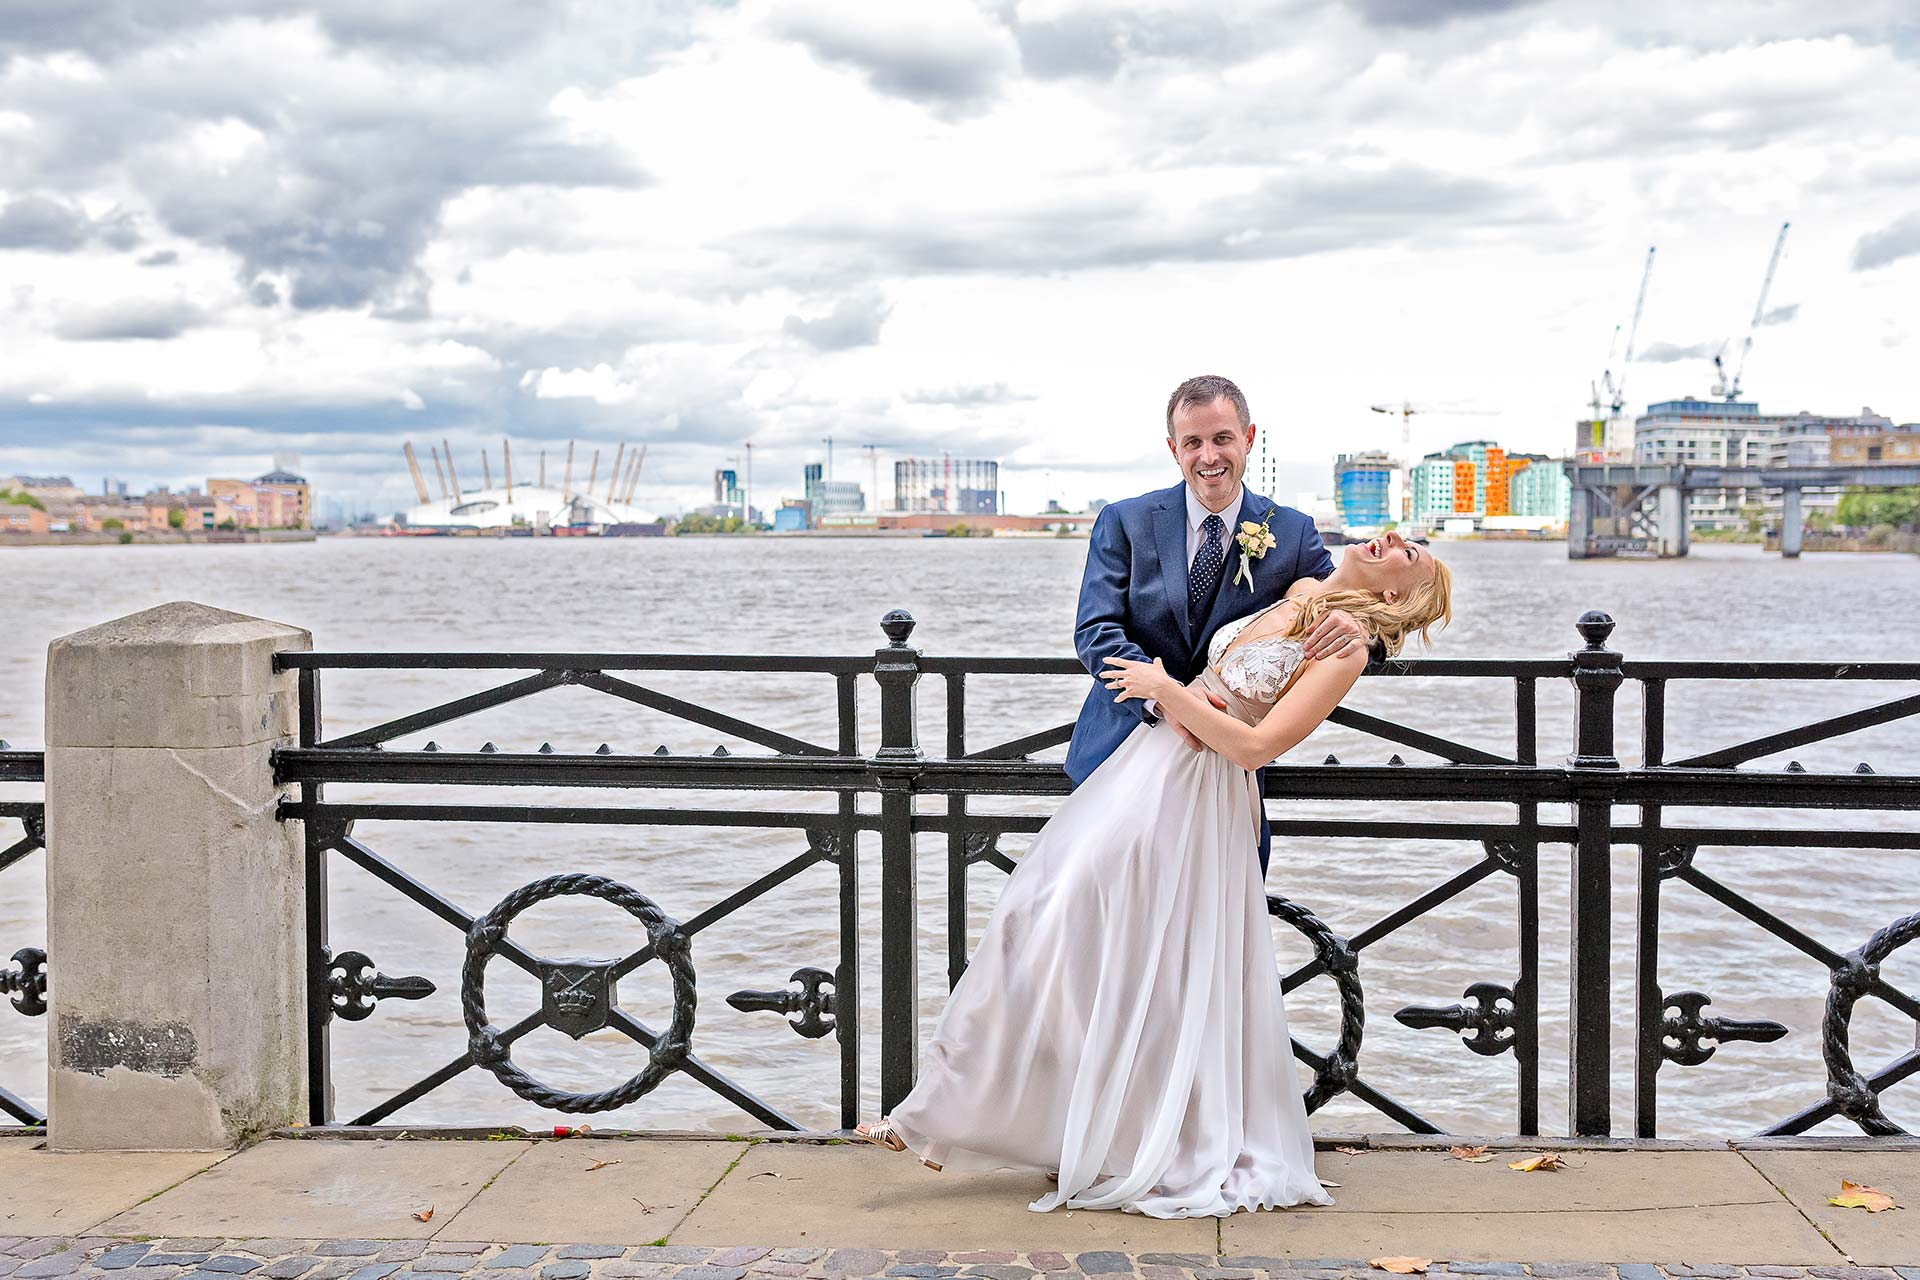 The-Wedding-of-Leah-&-Tony-at-Woolwich-Town-Hall-and-Greenwich-Tavern-Club-on-9th-September-2017-©-Brendan-Foster-Photography-445-Edit-4.jpg